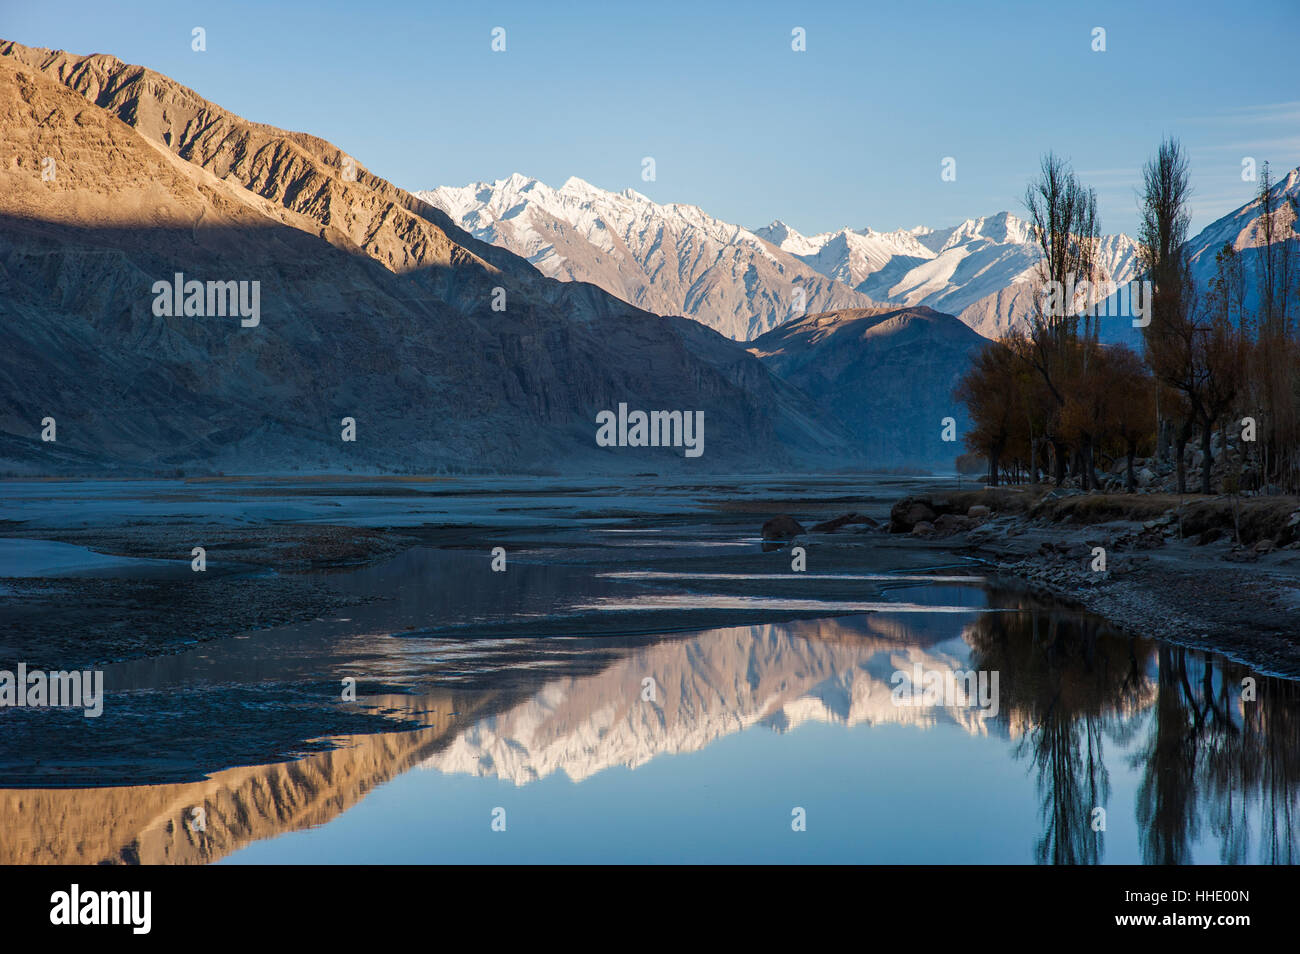 The crystal clear Shyok River creates a mirror image in the Khapalu valley near Skardu, Gilgit-Baltistan, Pakistan - Stock Image